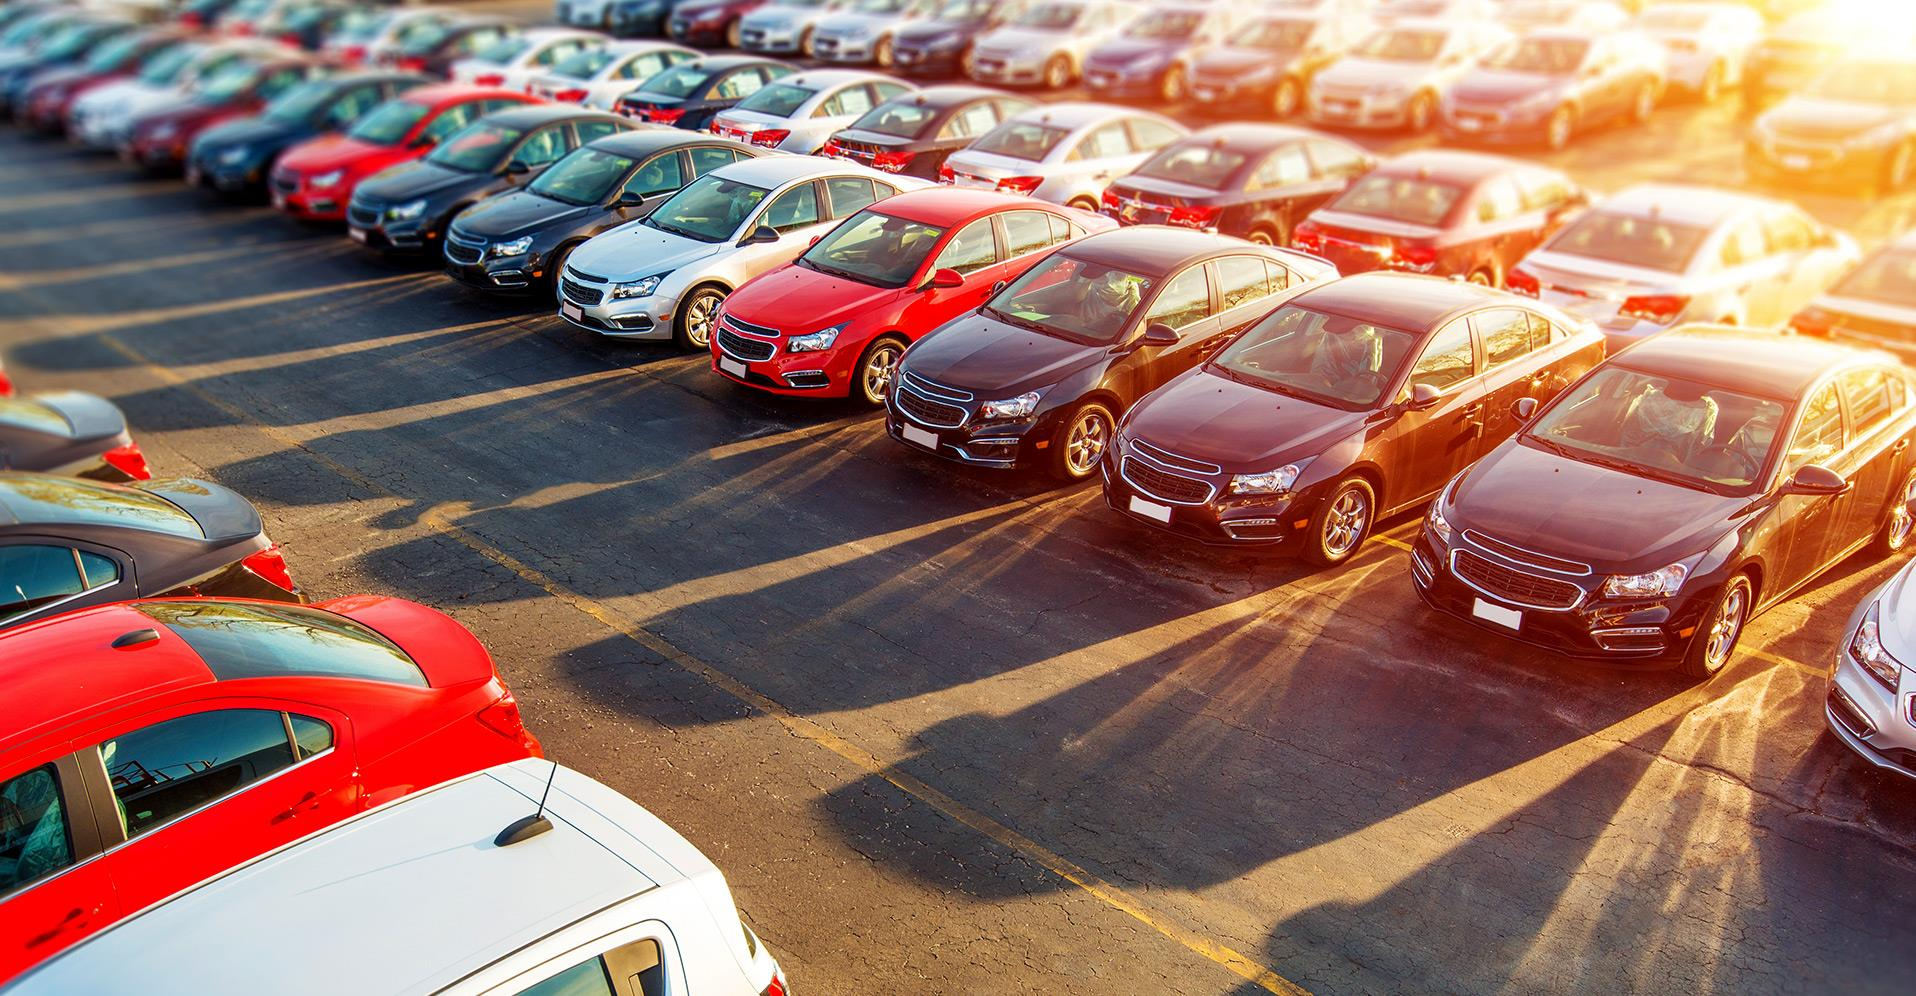 Car Shopping Bankrupt Hertz Is Selling Thousands Of Used Cars At Bargain Prices